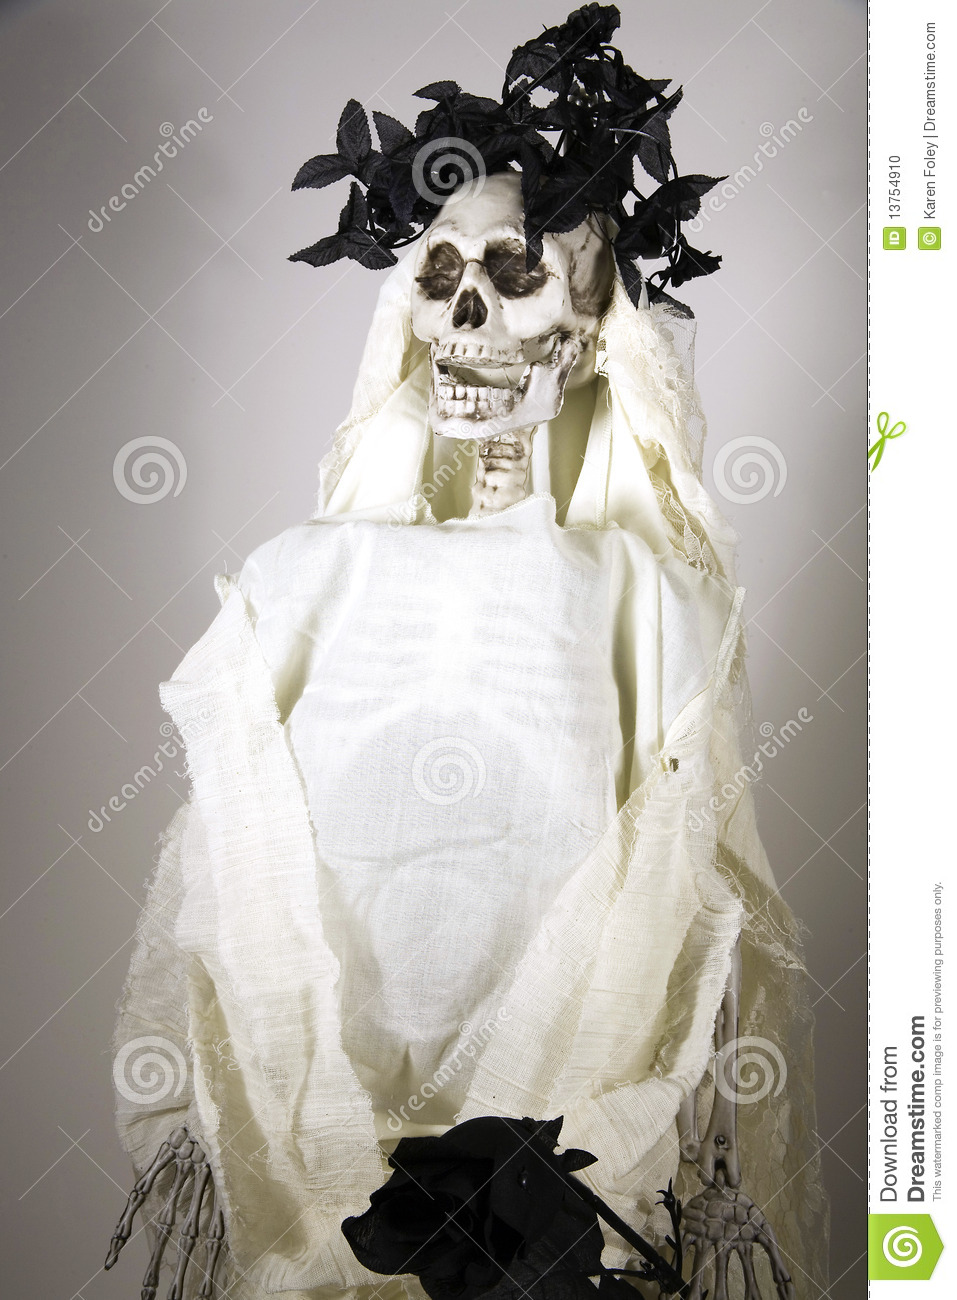 anorexic bride stock photo image 13754910